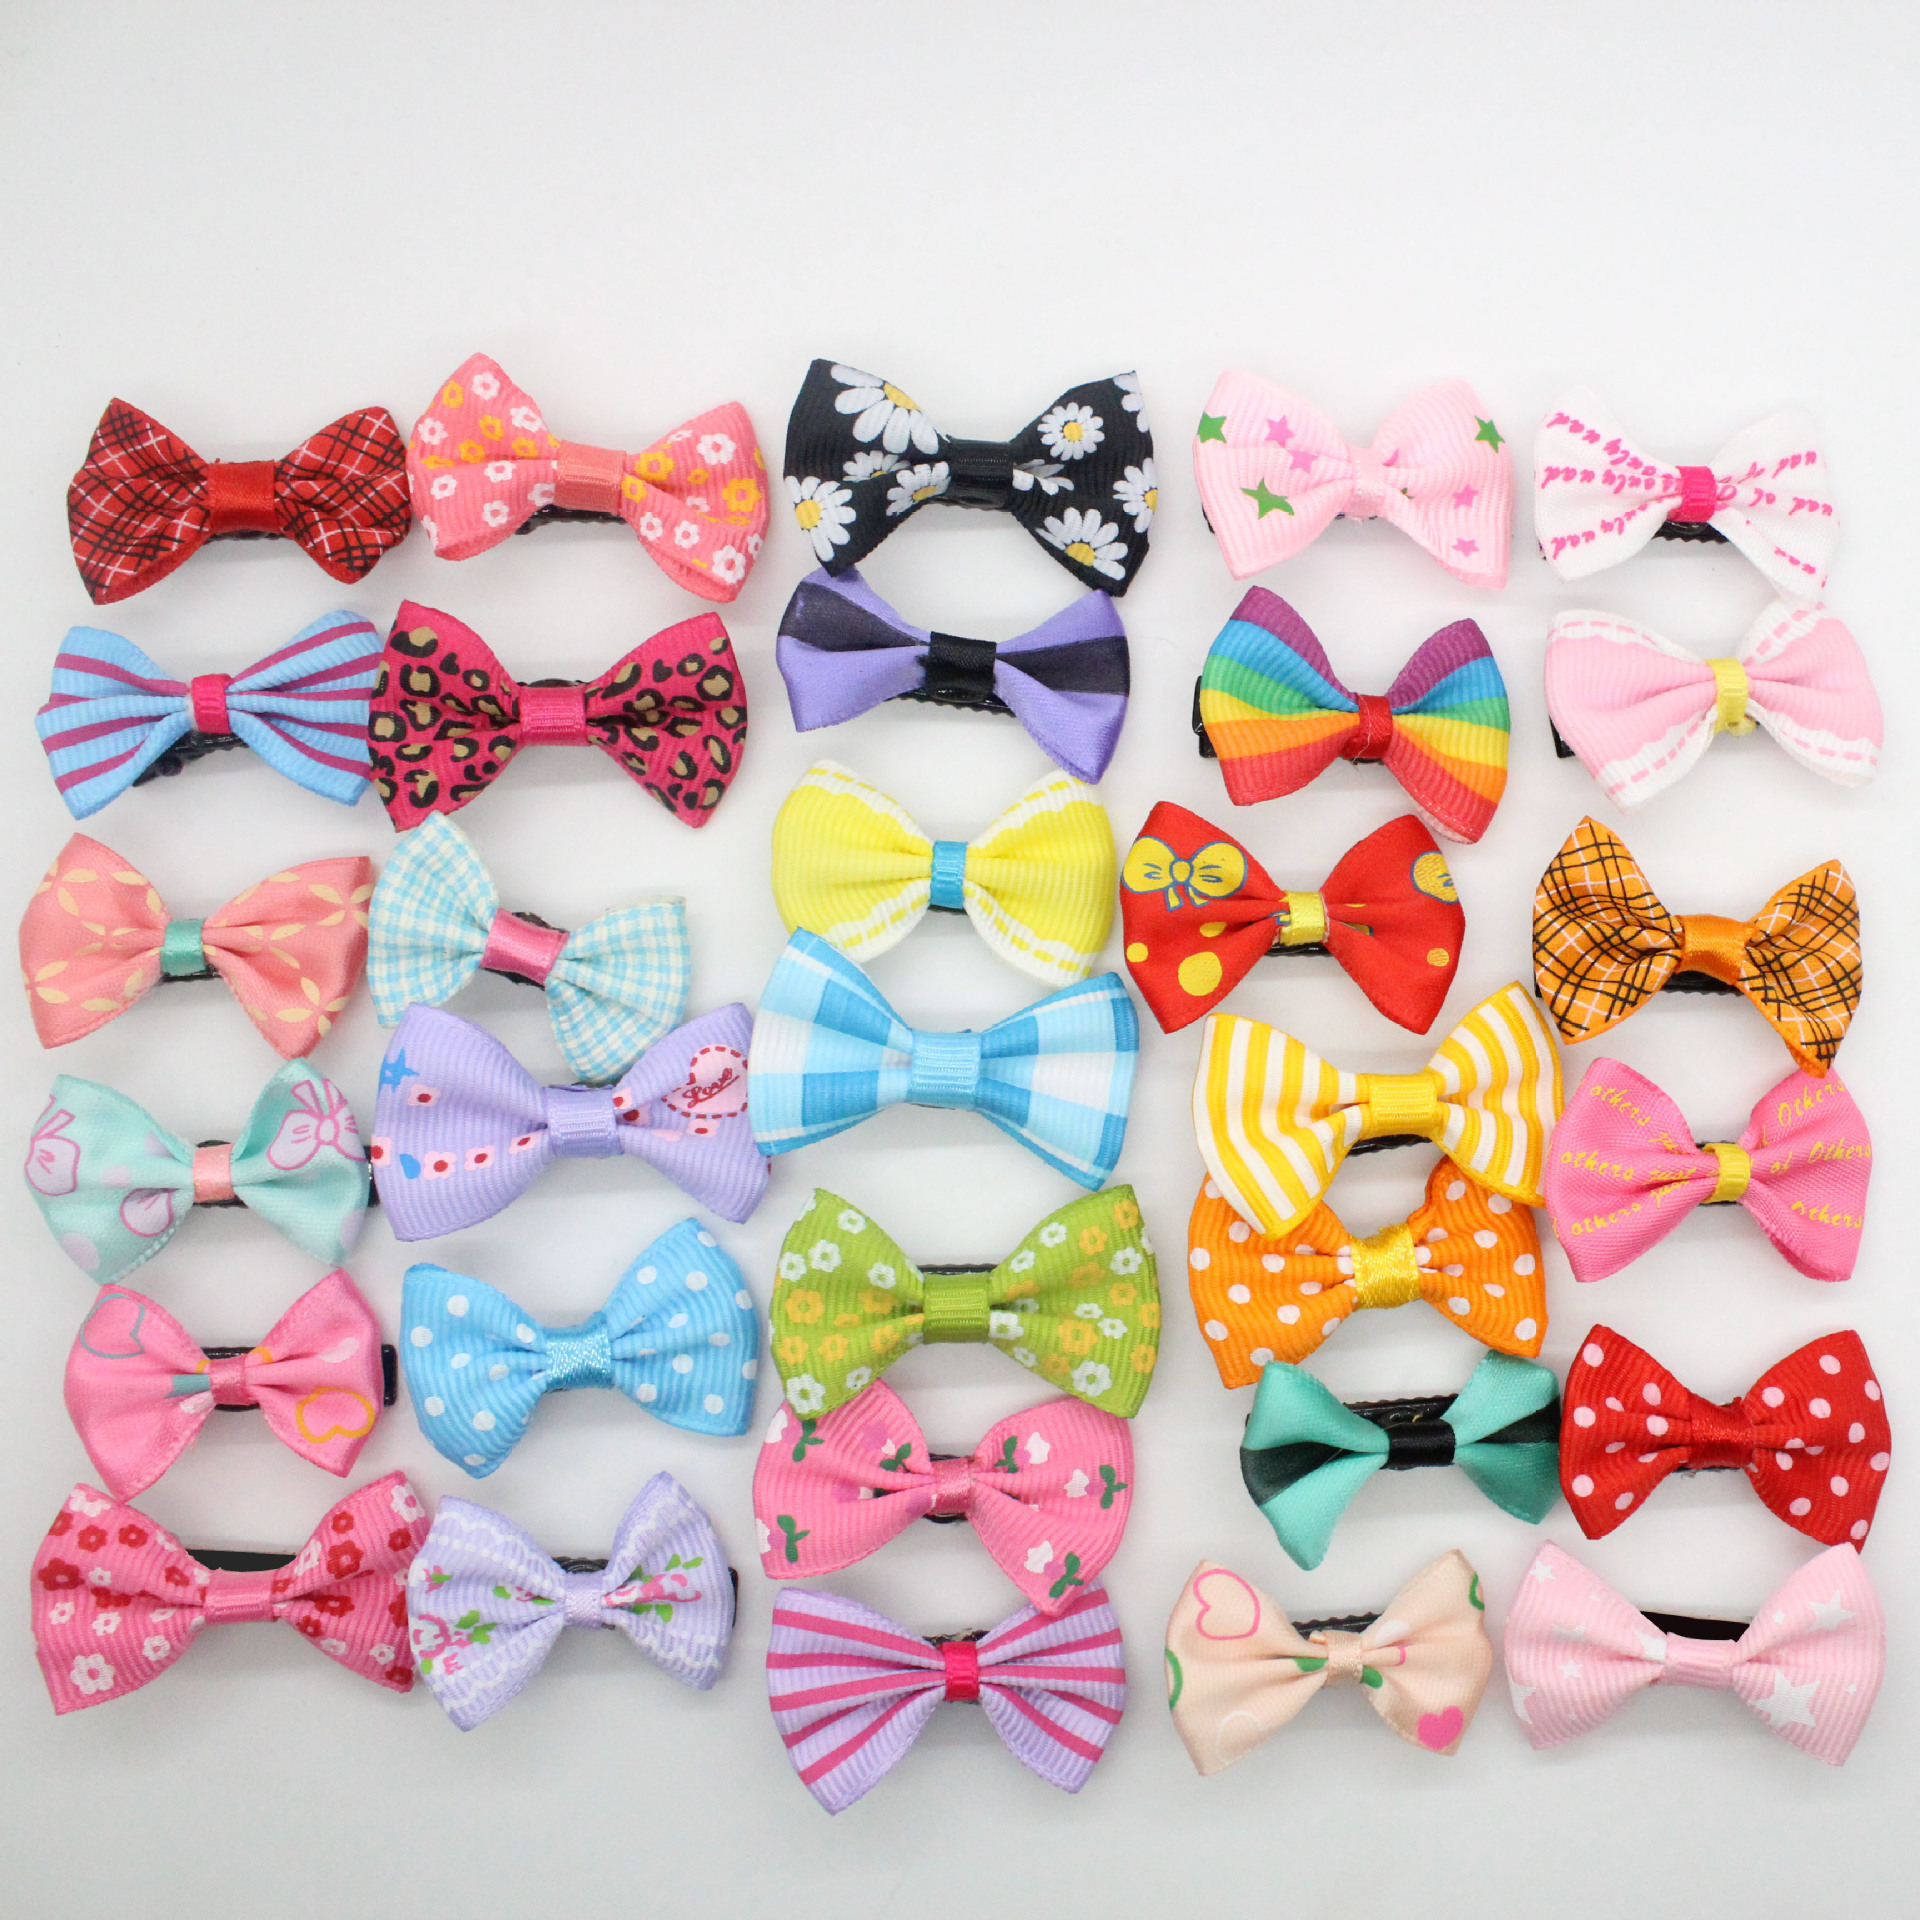 5Pcs/Lot Dog Kitten Puppy Cute Pet Grooming Solid Cotton Bow Flower Hairpins Butterfly Hair Clips Hair Barrette Accessories